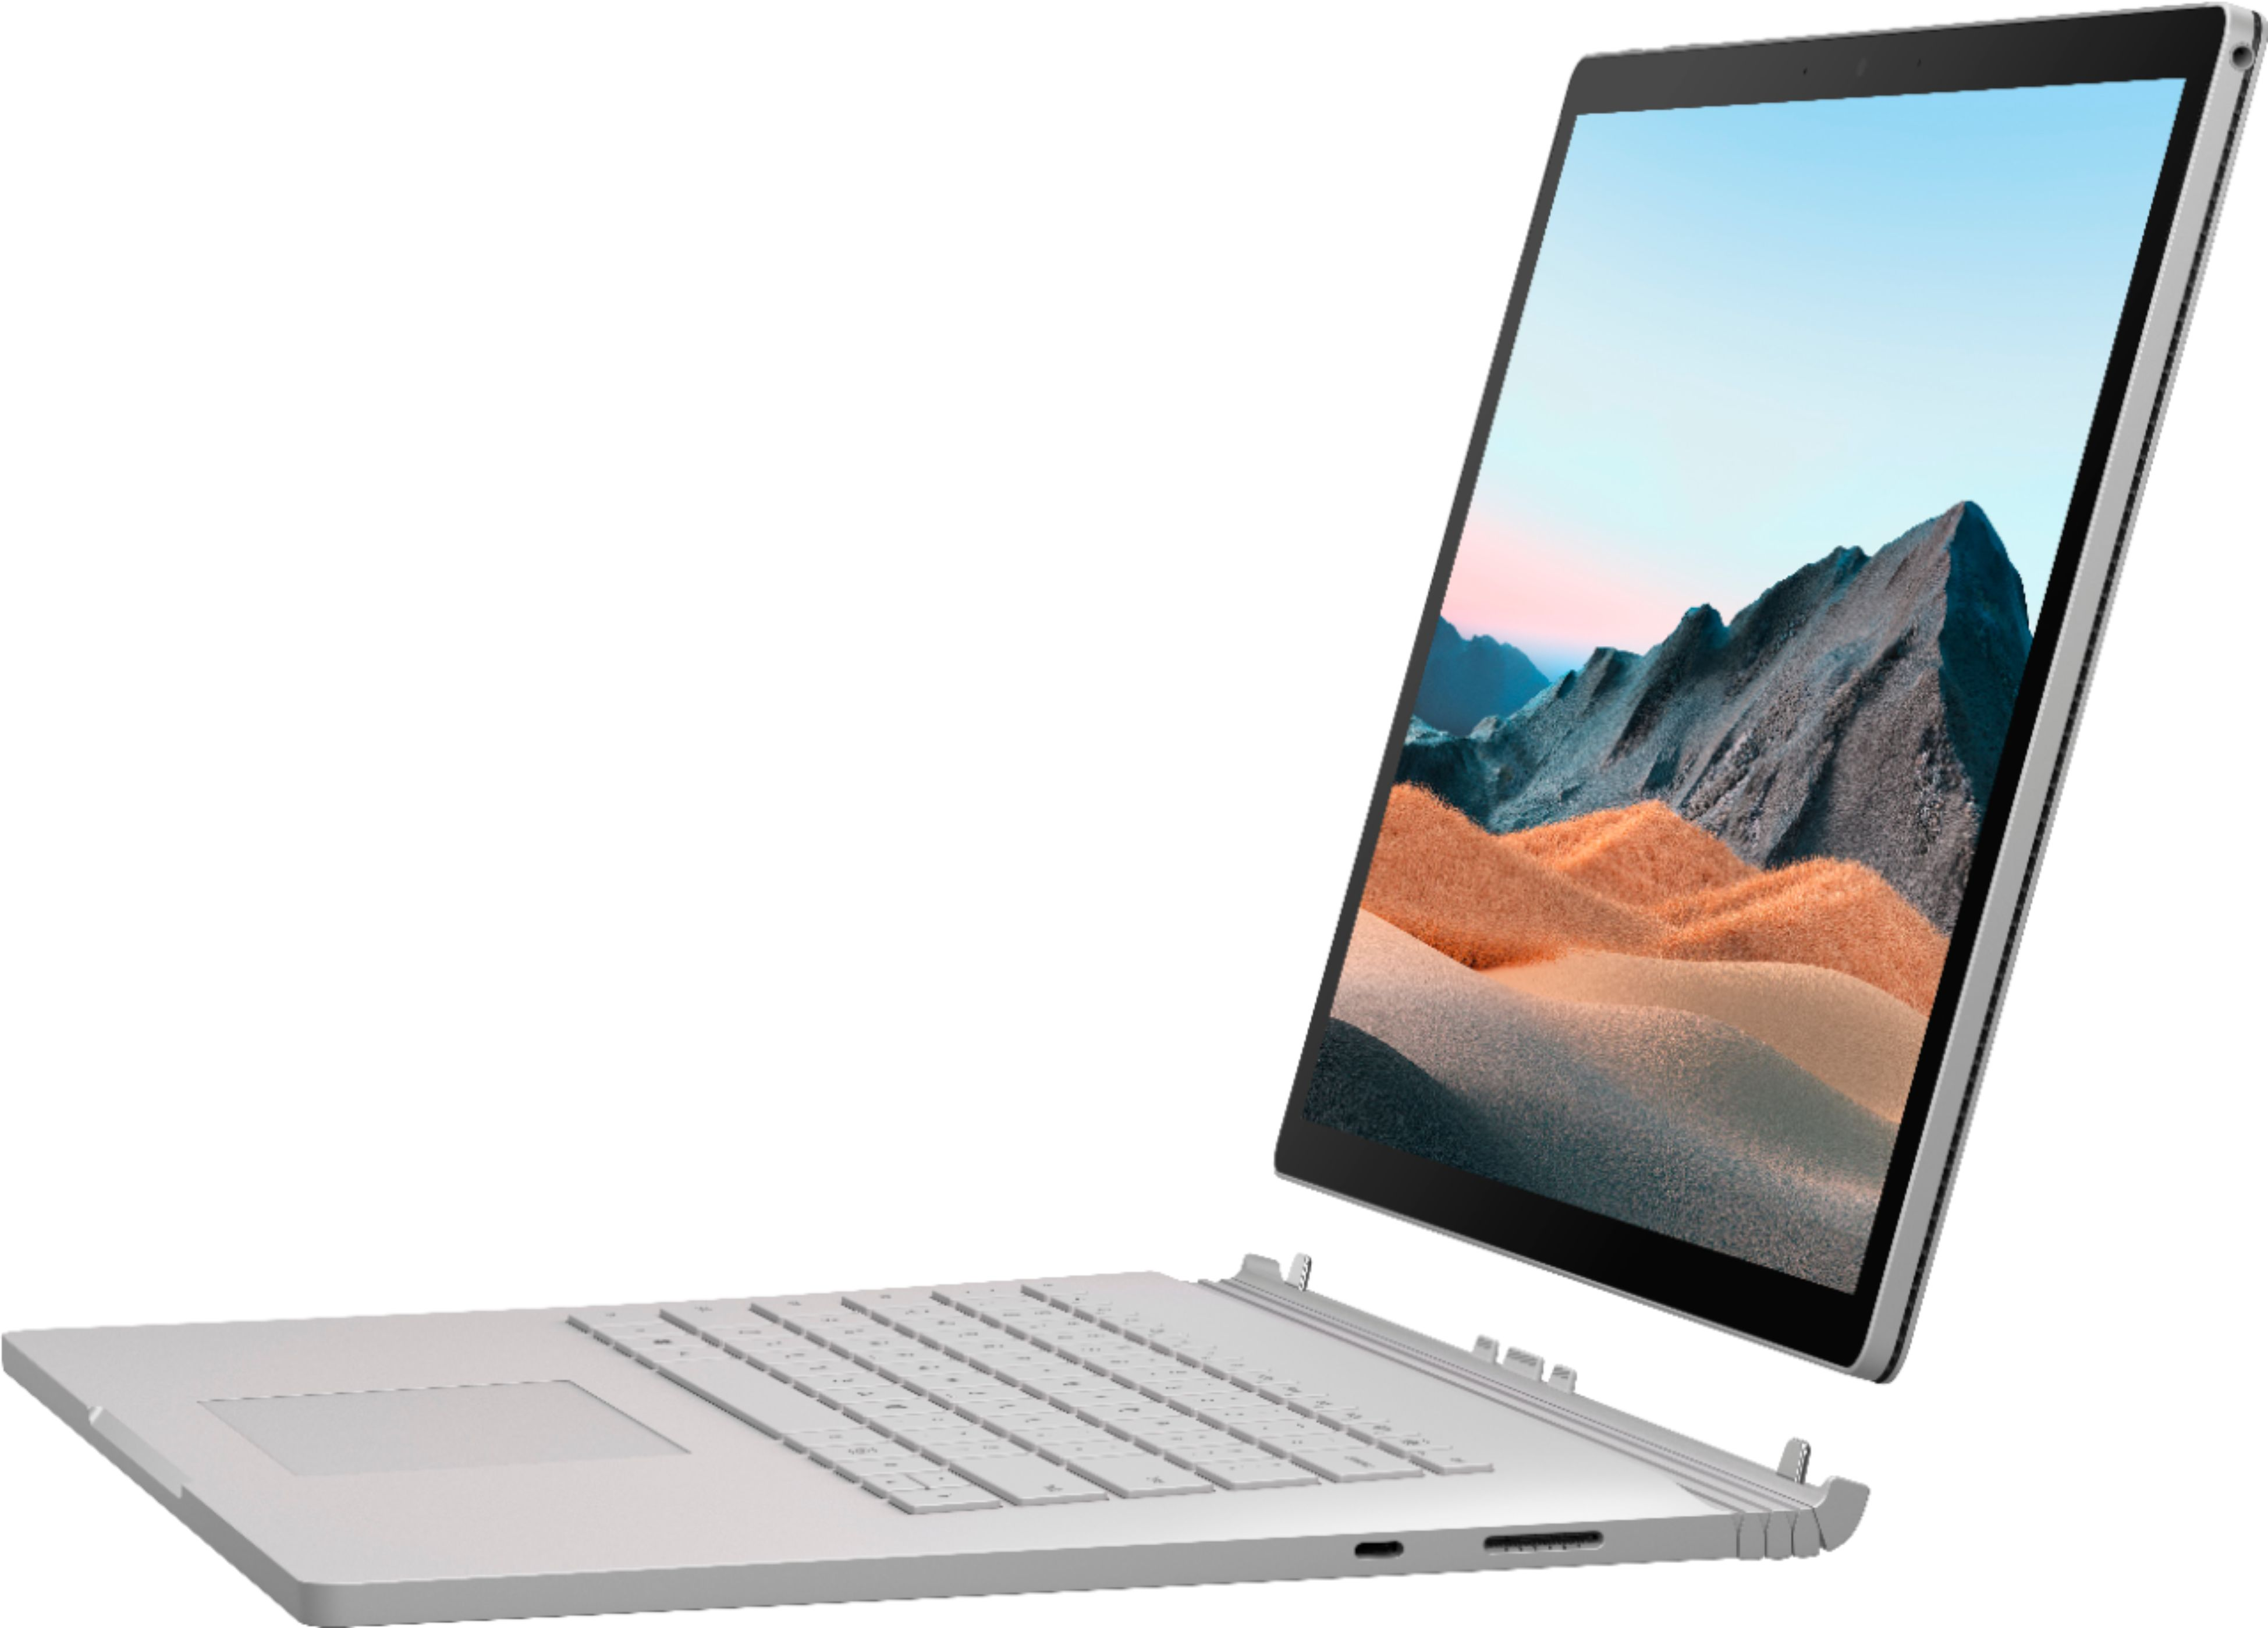 """Front Zoom. Microsoft - Surface Book 3 15"""" Touch-Screen PixelSense™ - 2-in-1 Laptop - Intel Core i7 - 16GB Memory - 256GB SSD - Platinum."""